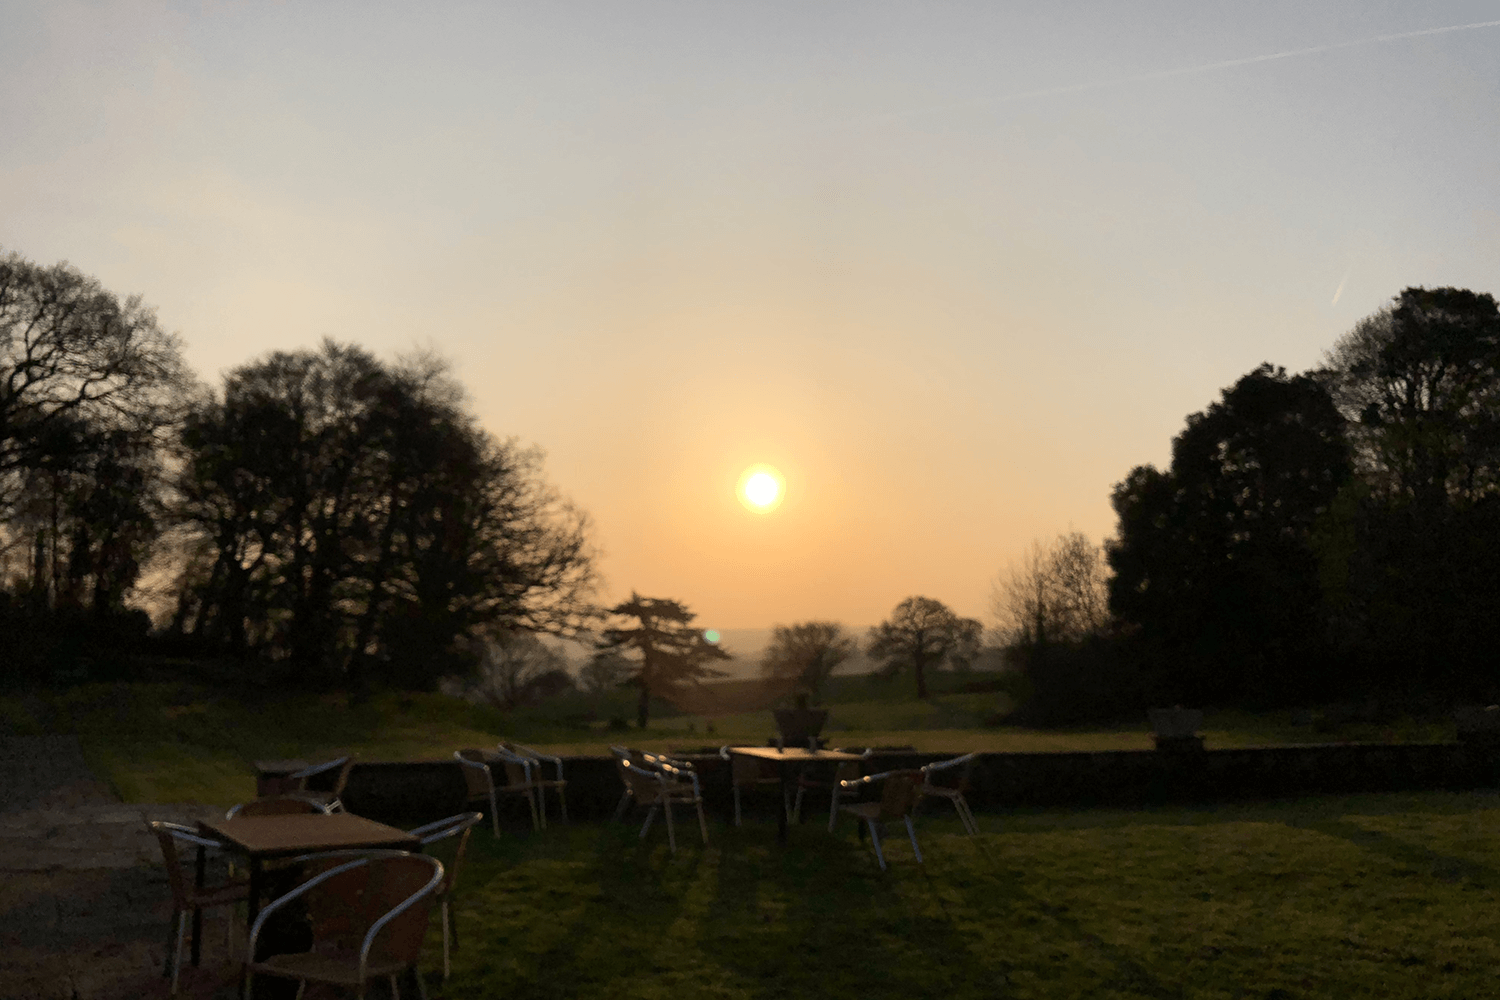 Sunrise at Croydon Hall